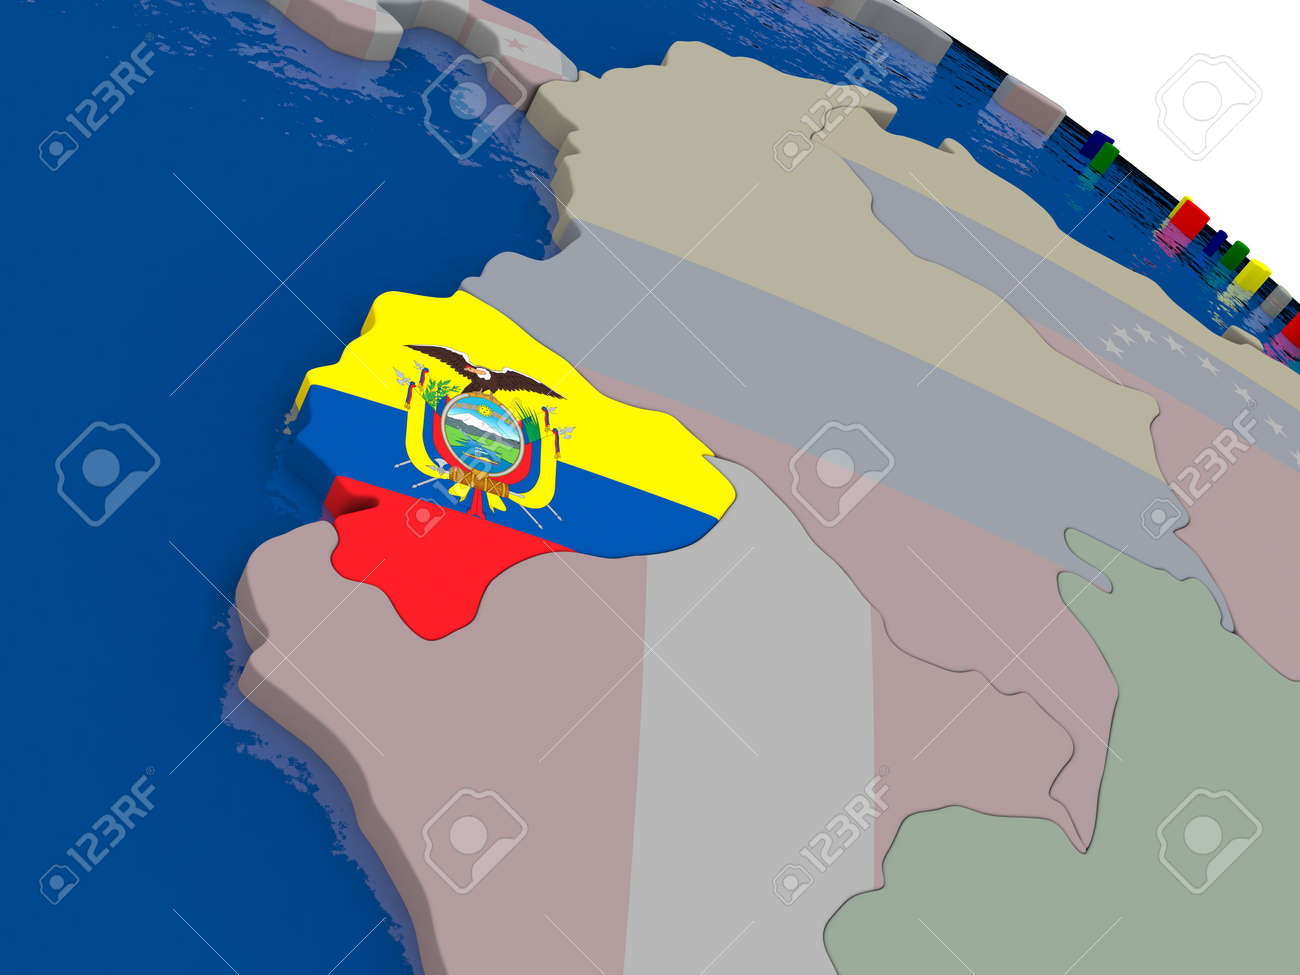 Ecuador with flag highlighted on model of globe 3d illustration ecuador with flag highlighted on model of globe 3d illustration stock illustration 58999519 gumiabroncs Image collections